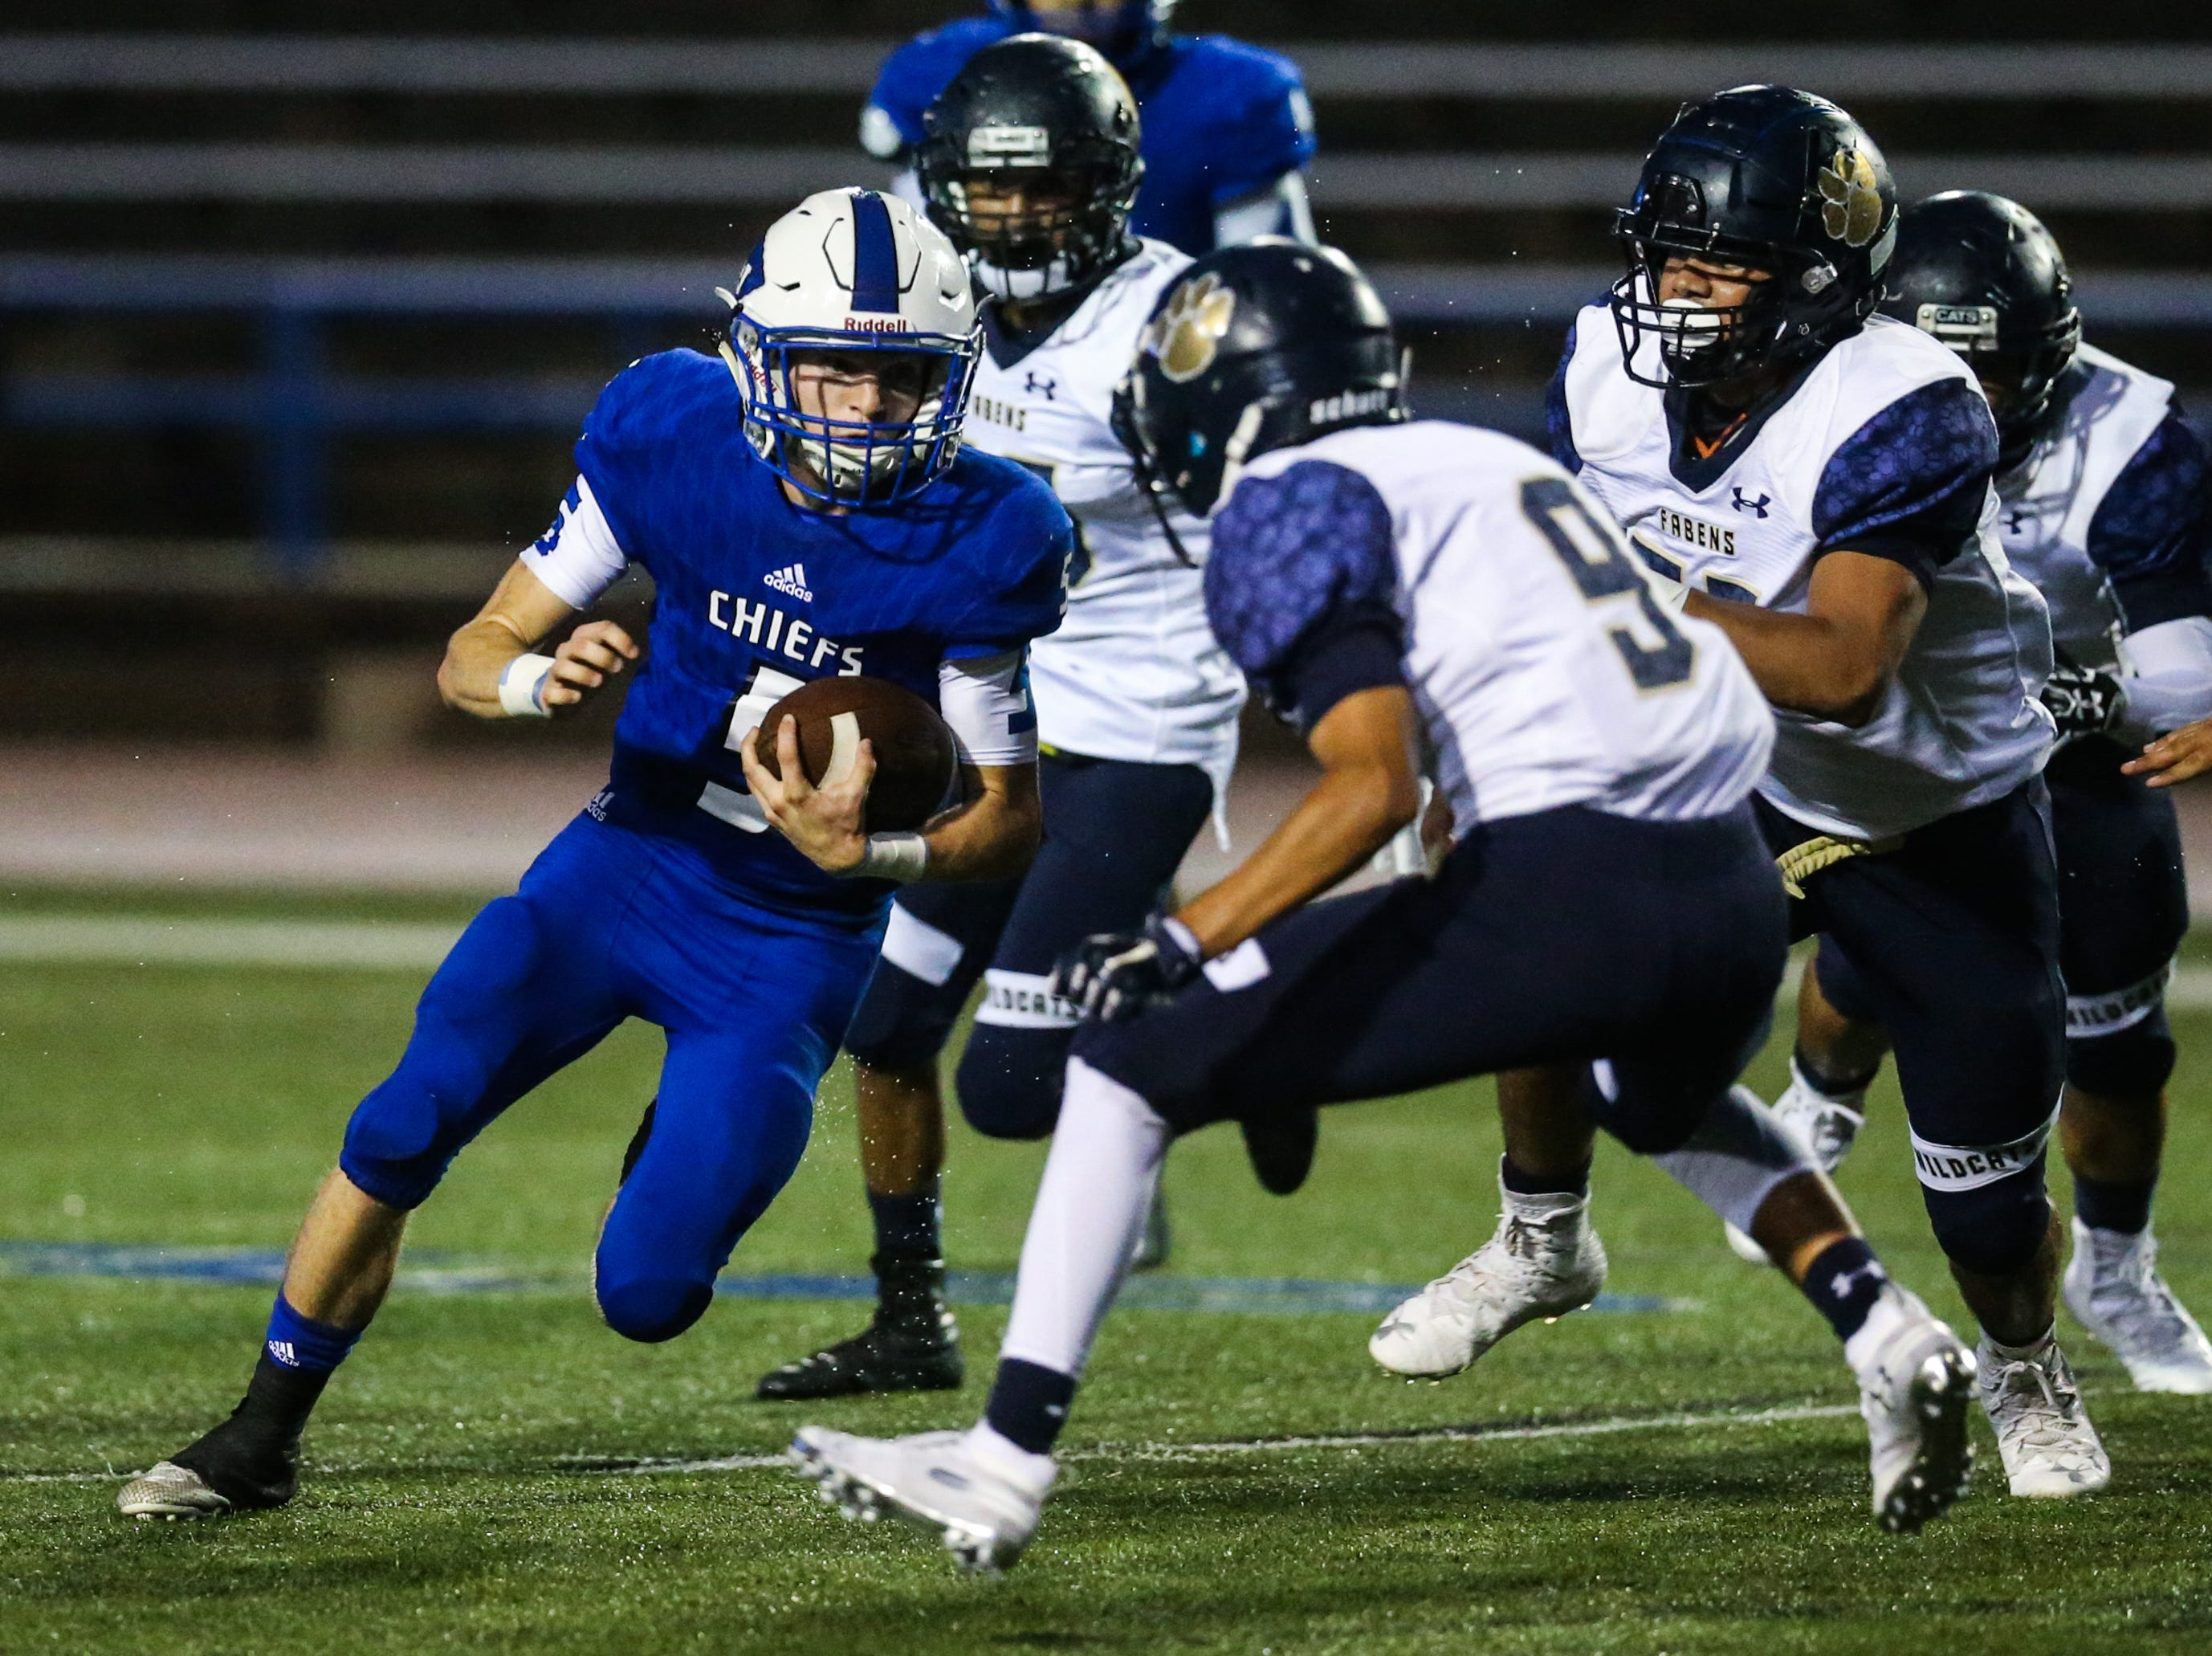 Lake View's Elliot Peterson runs the ball against Fabens Friday, Sept. 7, 2018, at San Angelo Stadium.